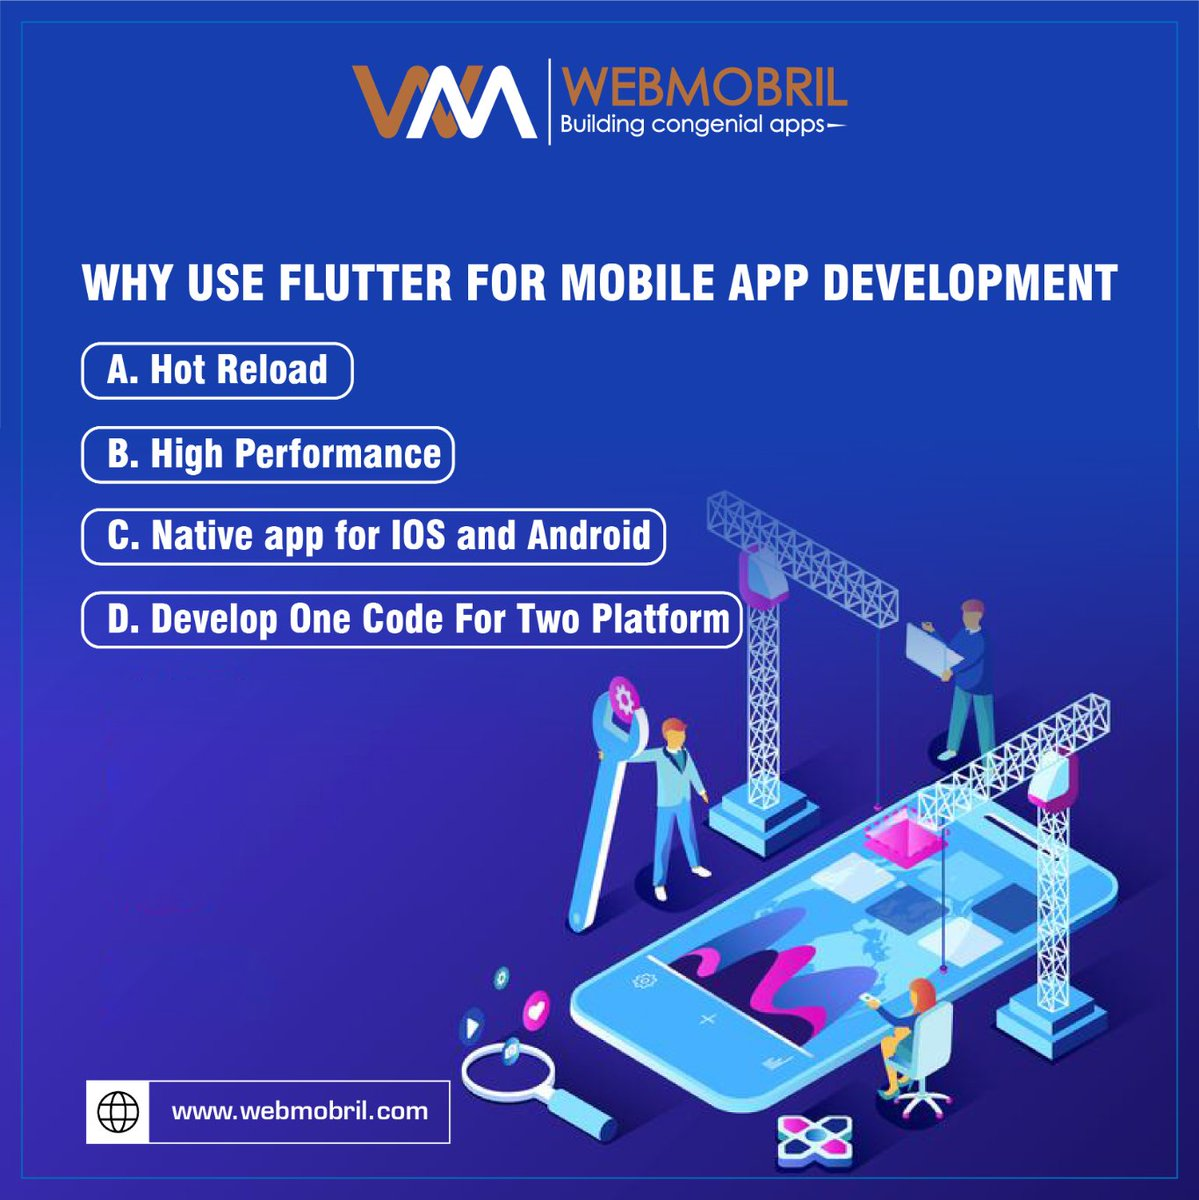 Flutter is an easy way to build and deploy visually attractive, faster mobile apps on #Android and #iOS platforms. There are more reasons to use Flutter for mobile app development.For more info: ...#flutter #programming #coding #flutterdeveloper #wmgoc